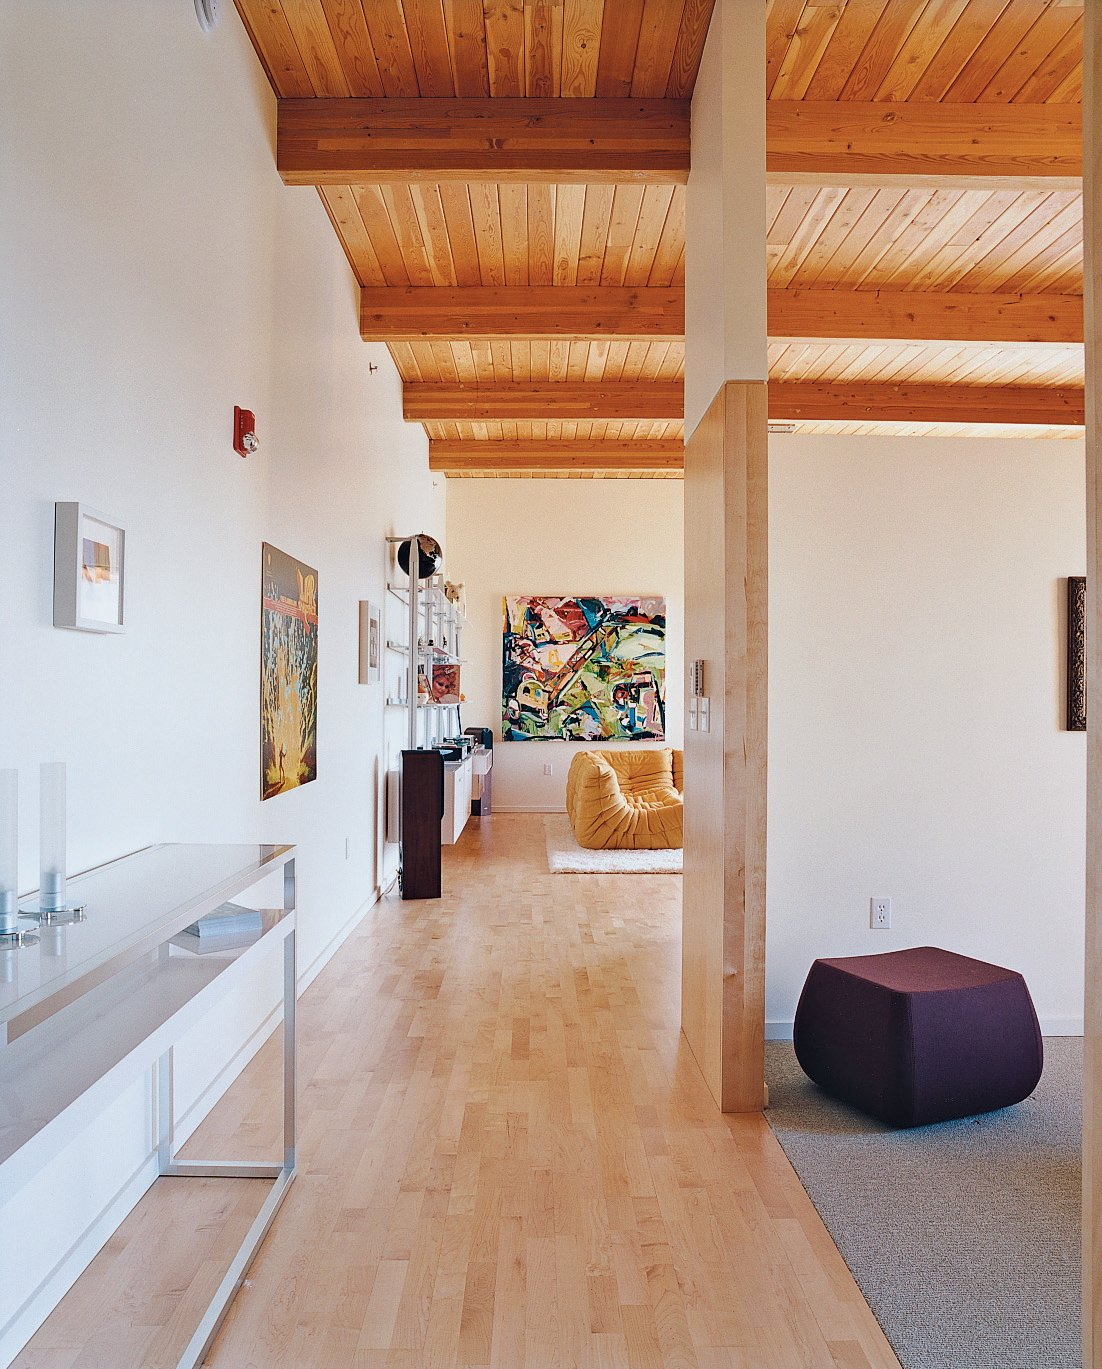 Hallway, Light Hardwood Floor, and Carpet Floor Although the loft is relatively small, high ceilings and an open floor plan give it room to spare.  Photo 6 of 8 in 8 Examples That Show How Loft Living Goes Beyond Just NYC from Community Building